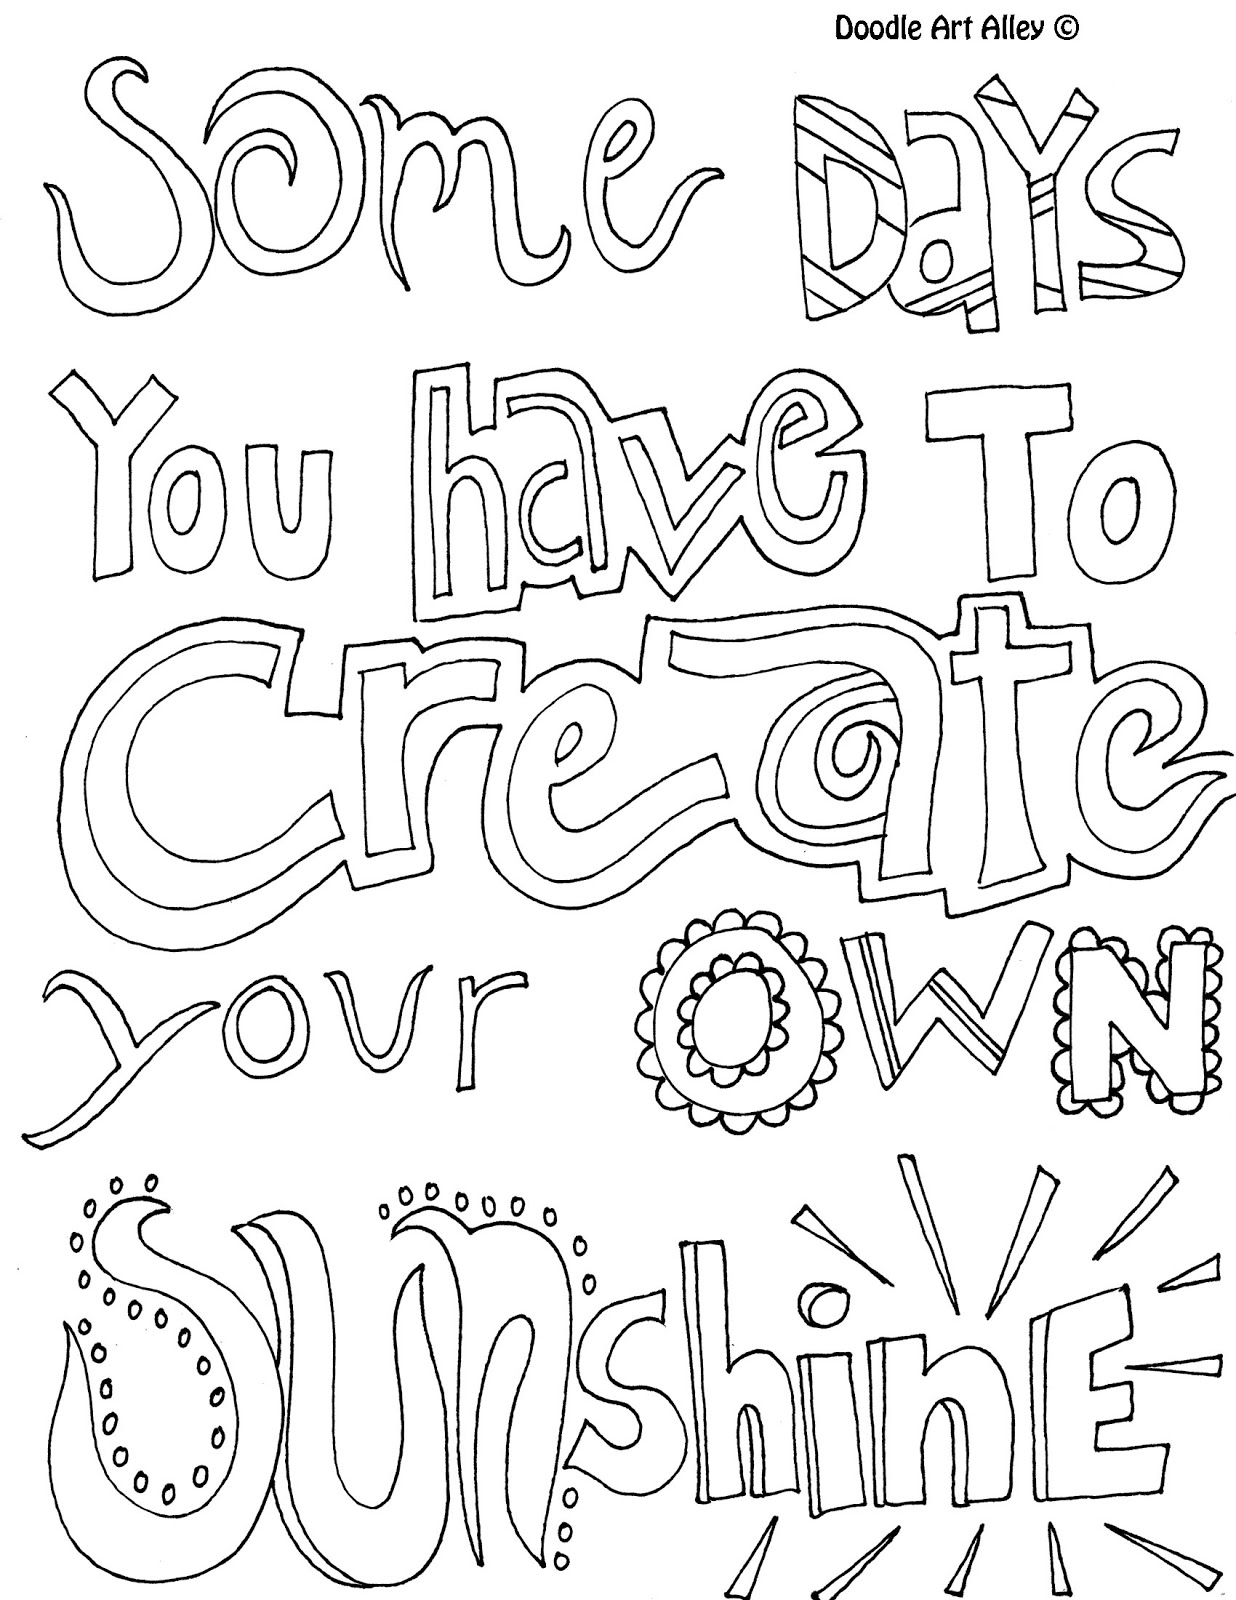 coloring pages with quotes family quote coloring pages doodle art alley pages with quotes coloring